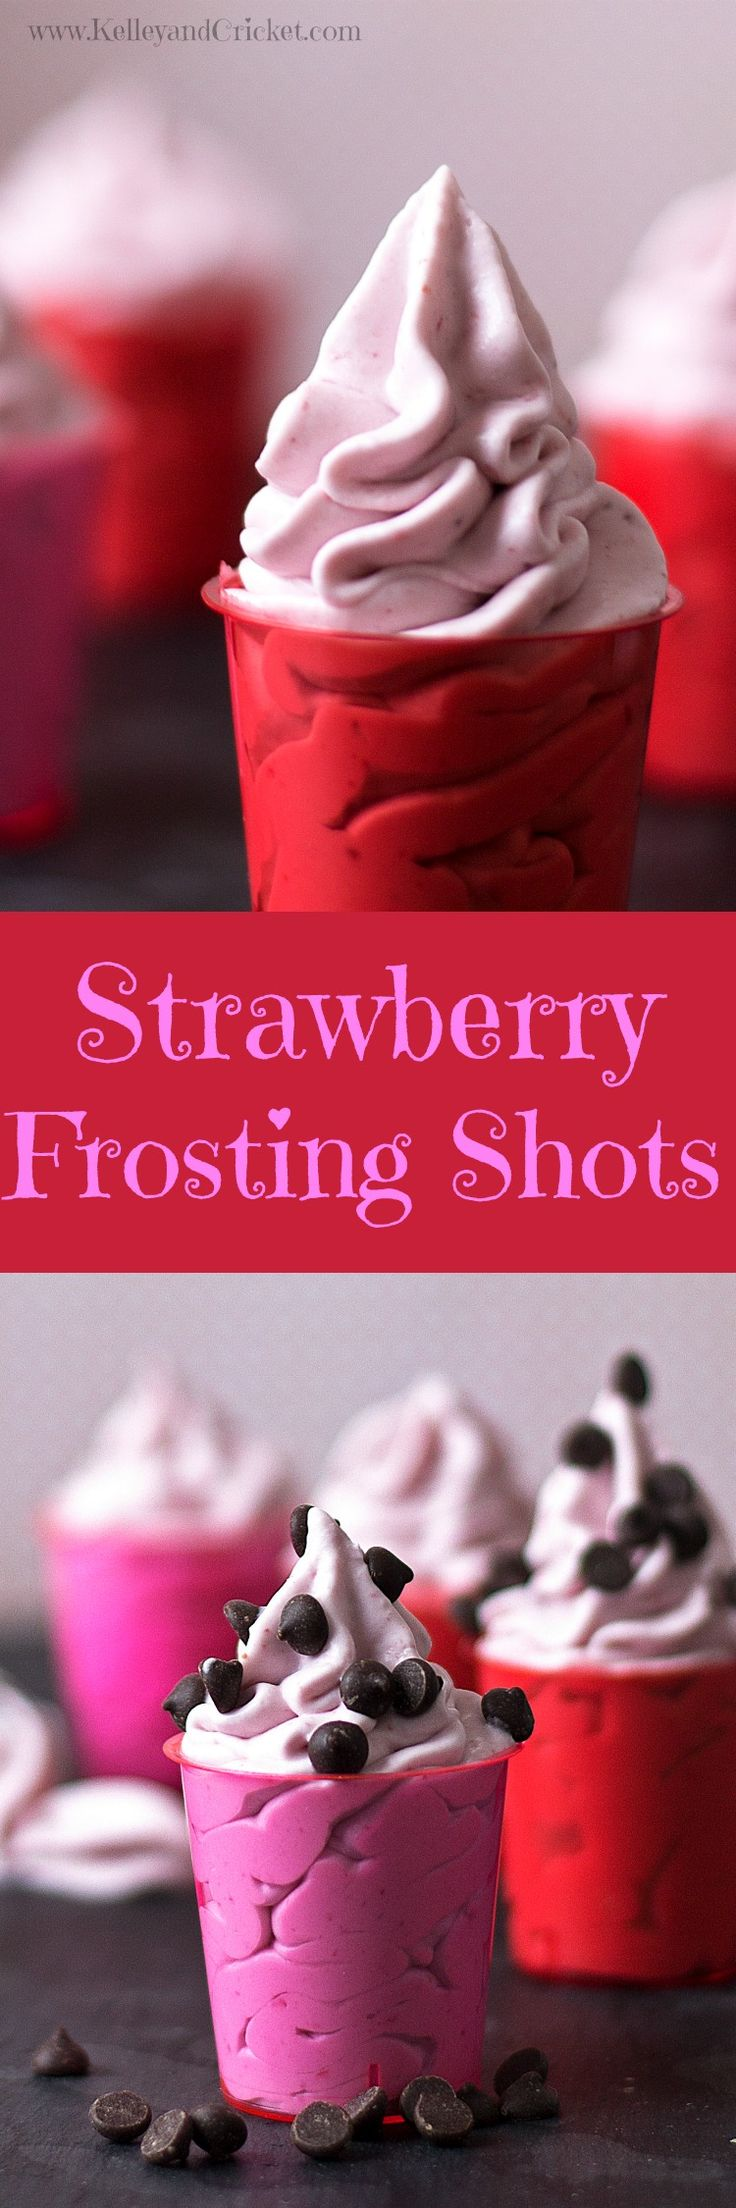 These Strawberry Frosting shots are sweet and berry-ful, and will surely satisfy your sweet tooth. They taste just like creamy and rich strawberry frosting, but they happen to be healthy, so have a few! Made with only 3 simple ingredients, you can whip these up in 5 minutes! They are dairy-free, gluten-free, and paleo.